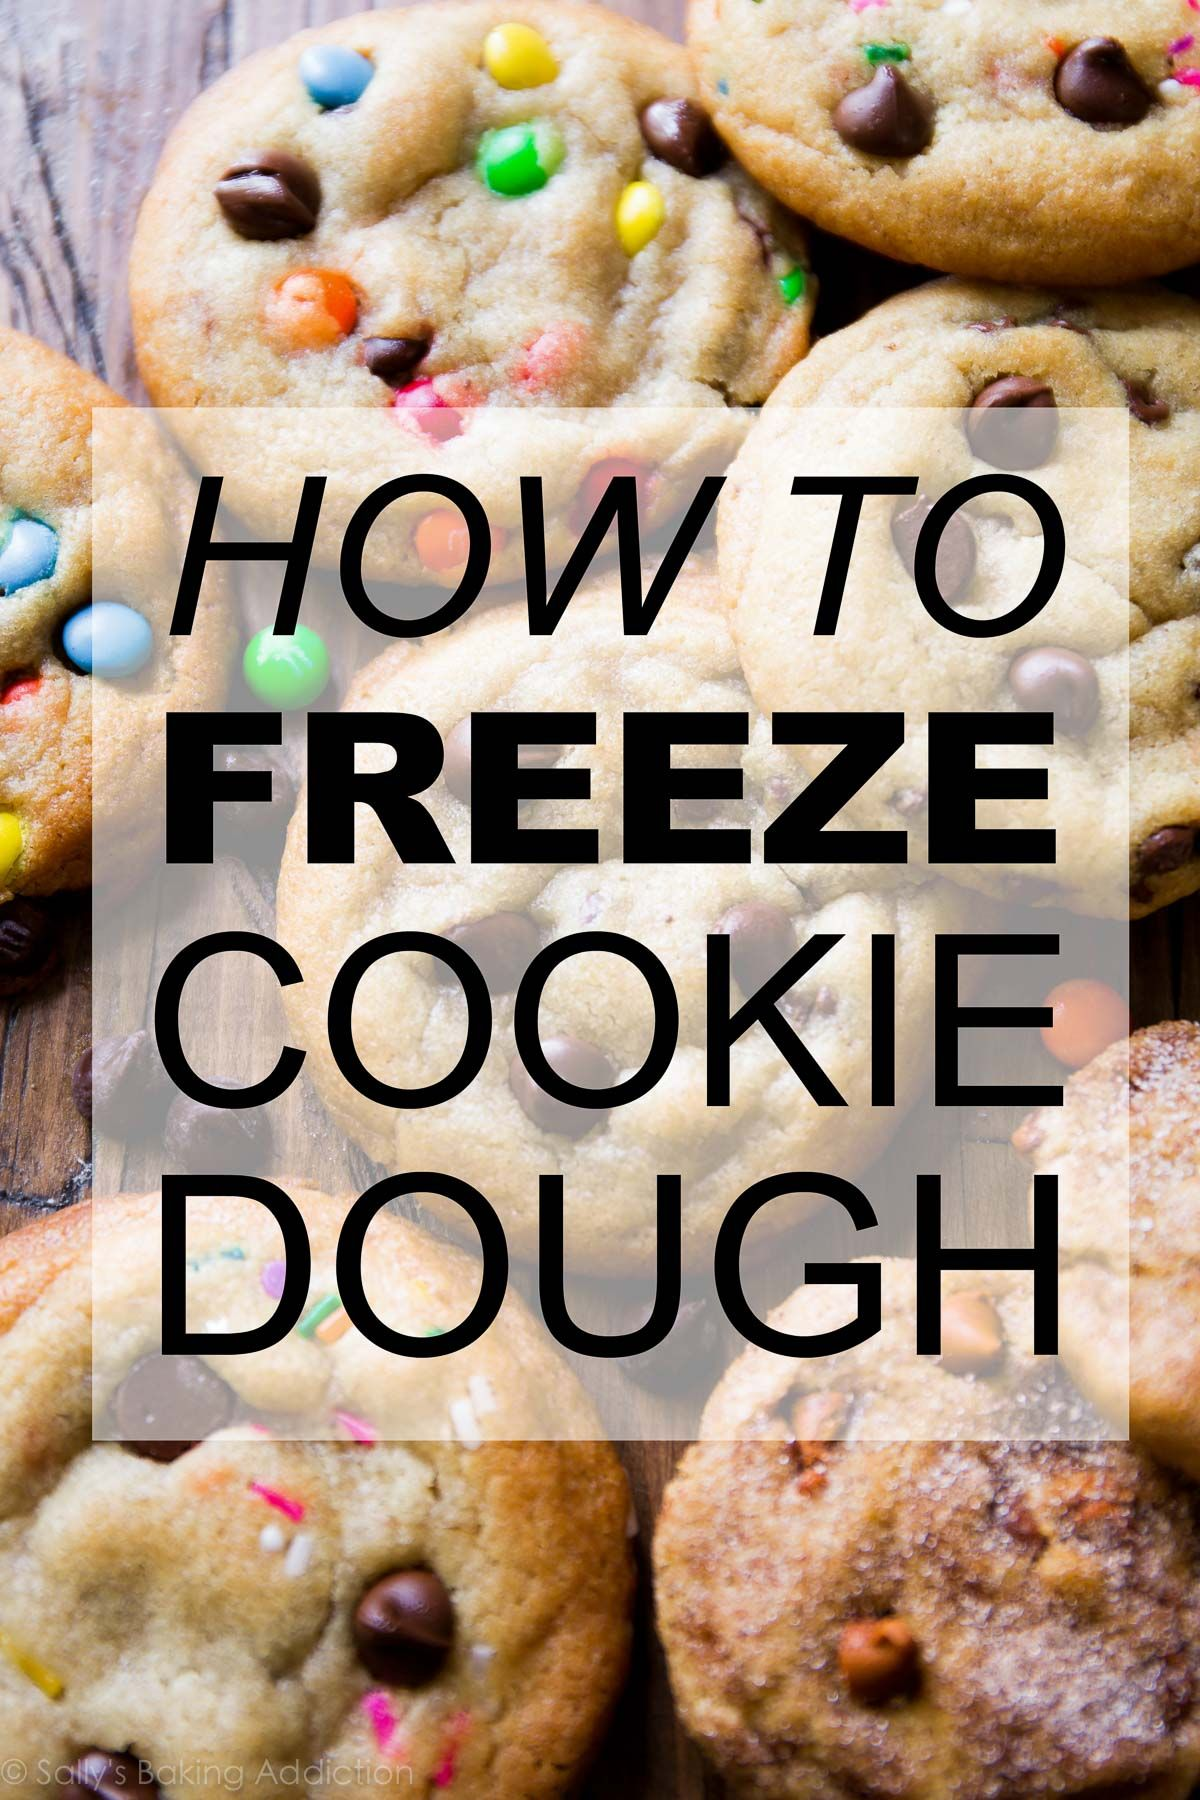 How to Freeze Cookie Dough | Sally's Baking Addiction